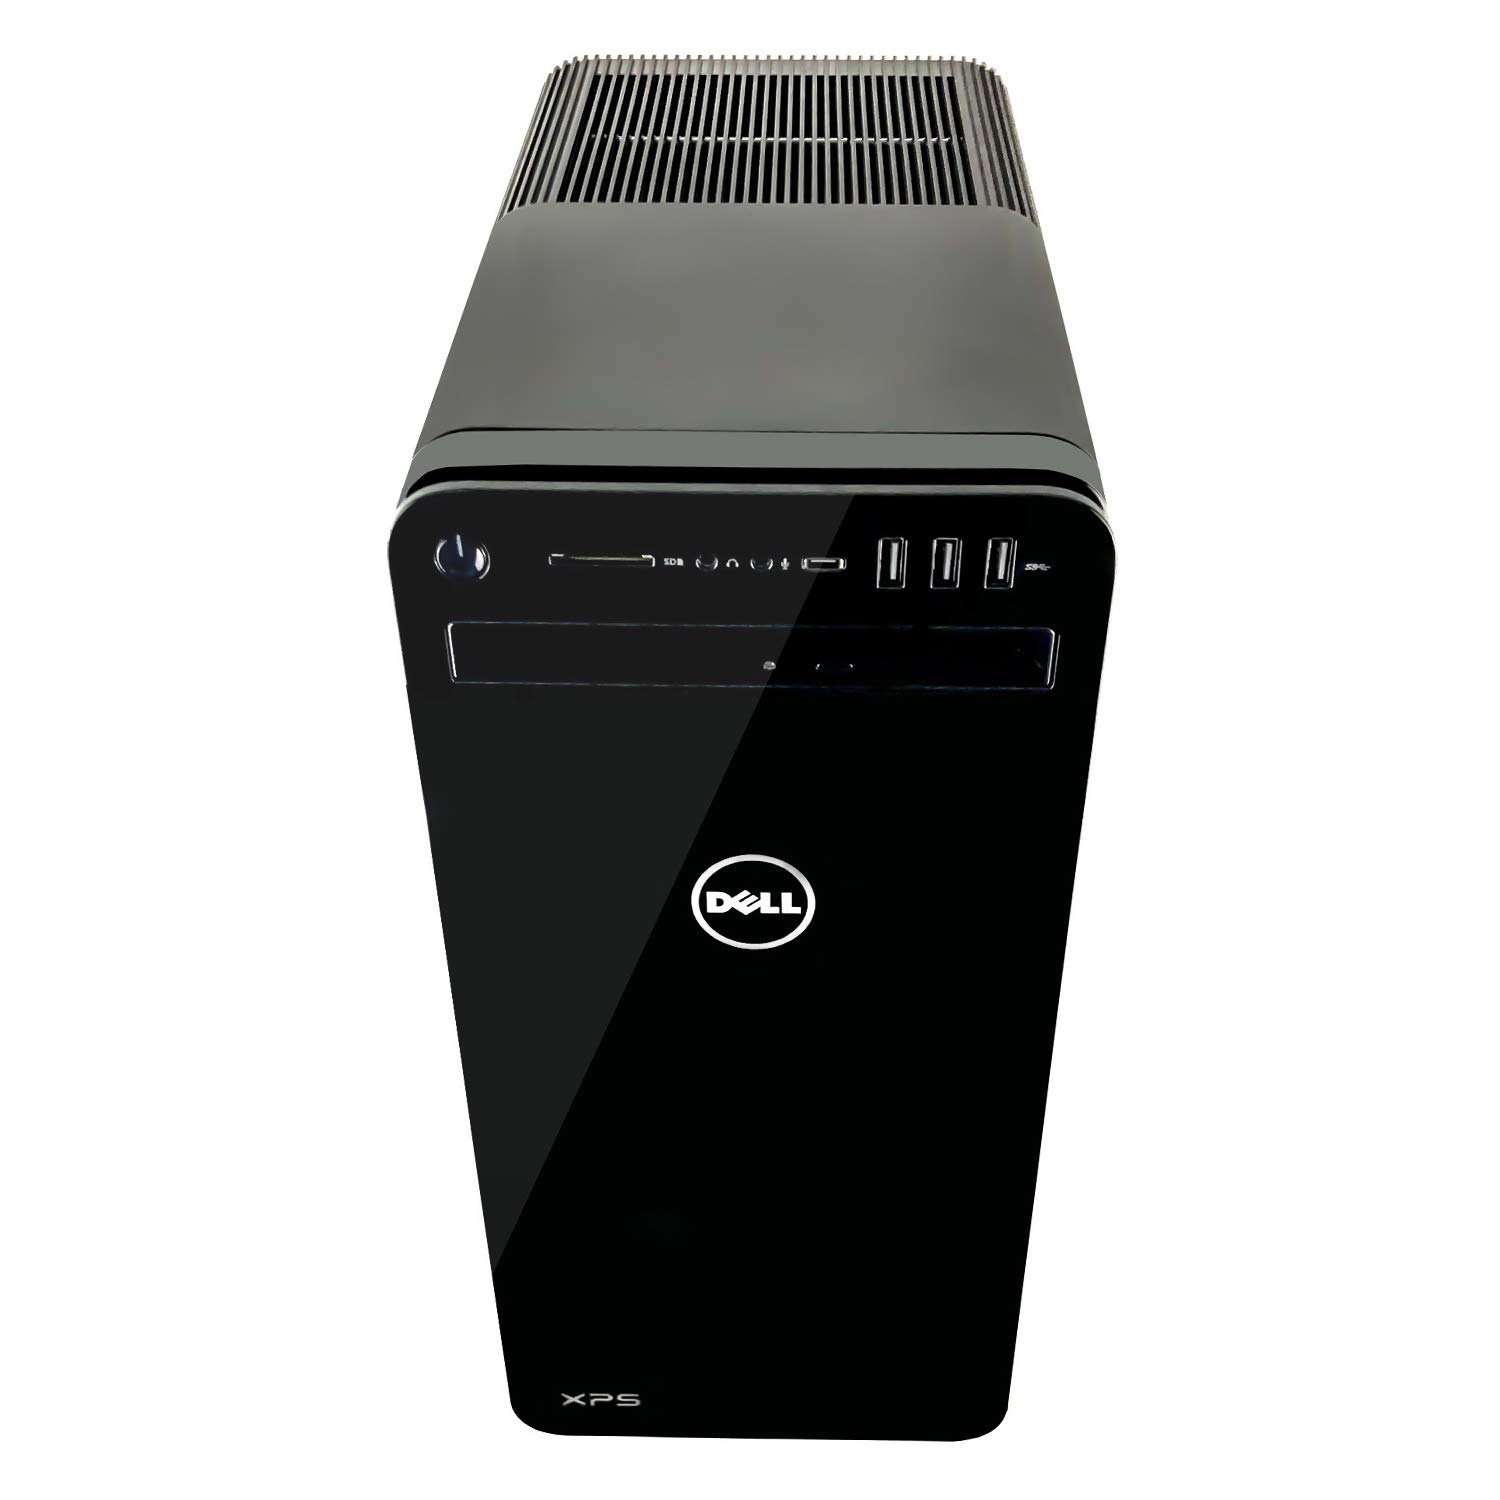 Dell Studio XPS Desktop 435MT Bluetooth Keyboard/Mouse Drivers for Windows Download